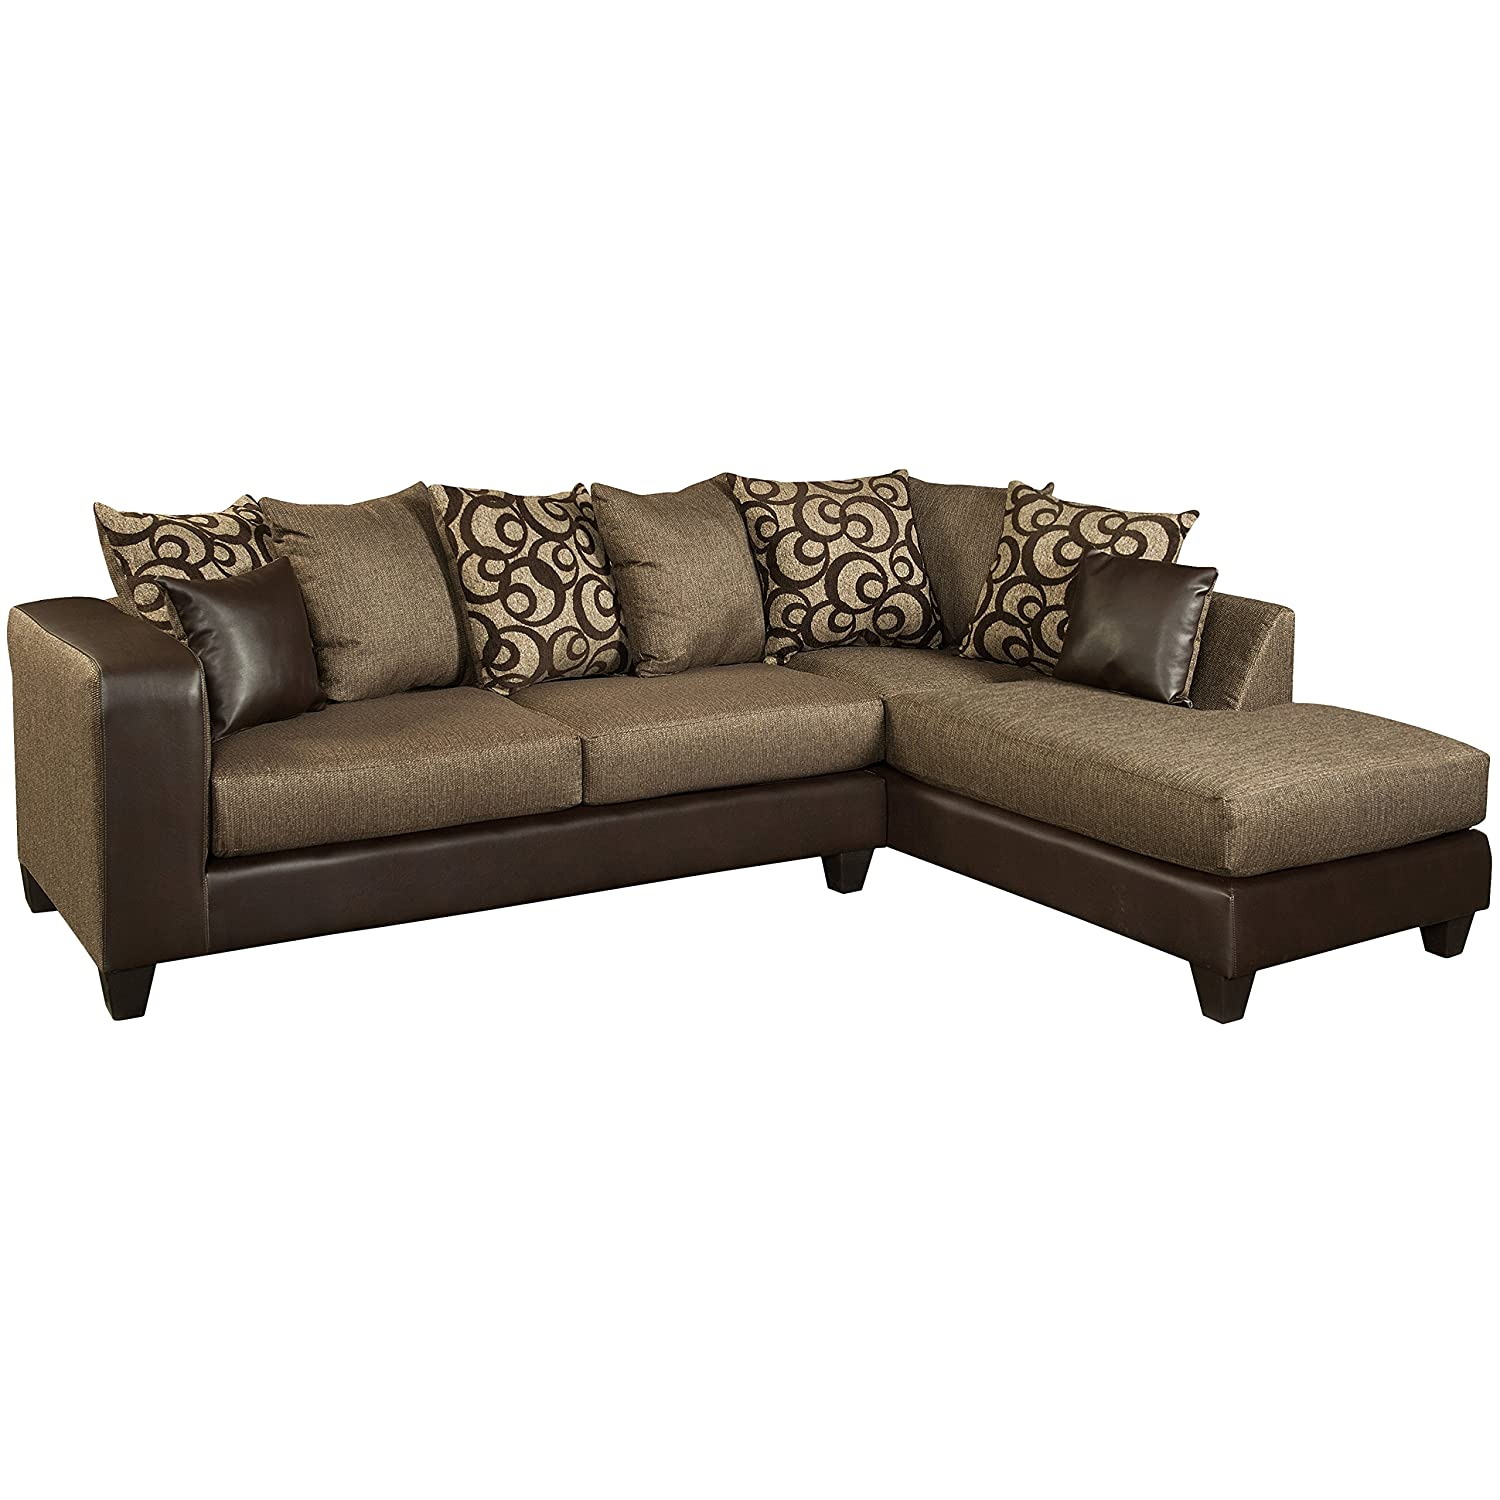 Flash Furniture Riverstone Object Espresso Chenille Sectional Sofa - Brown